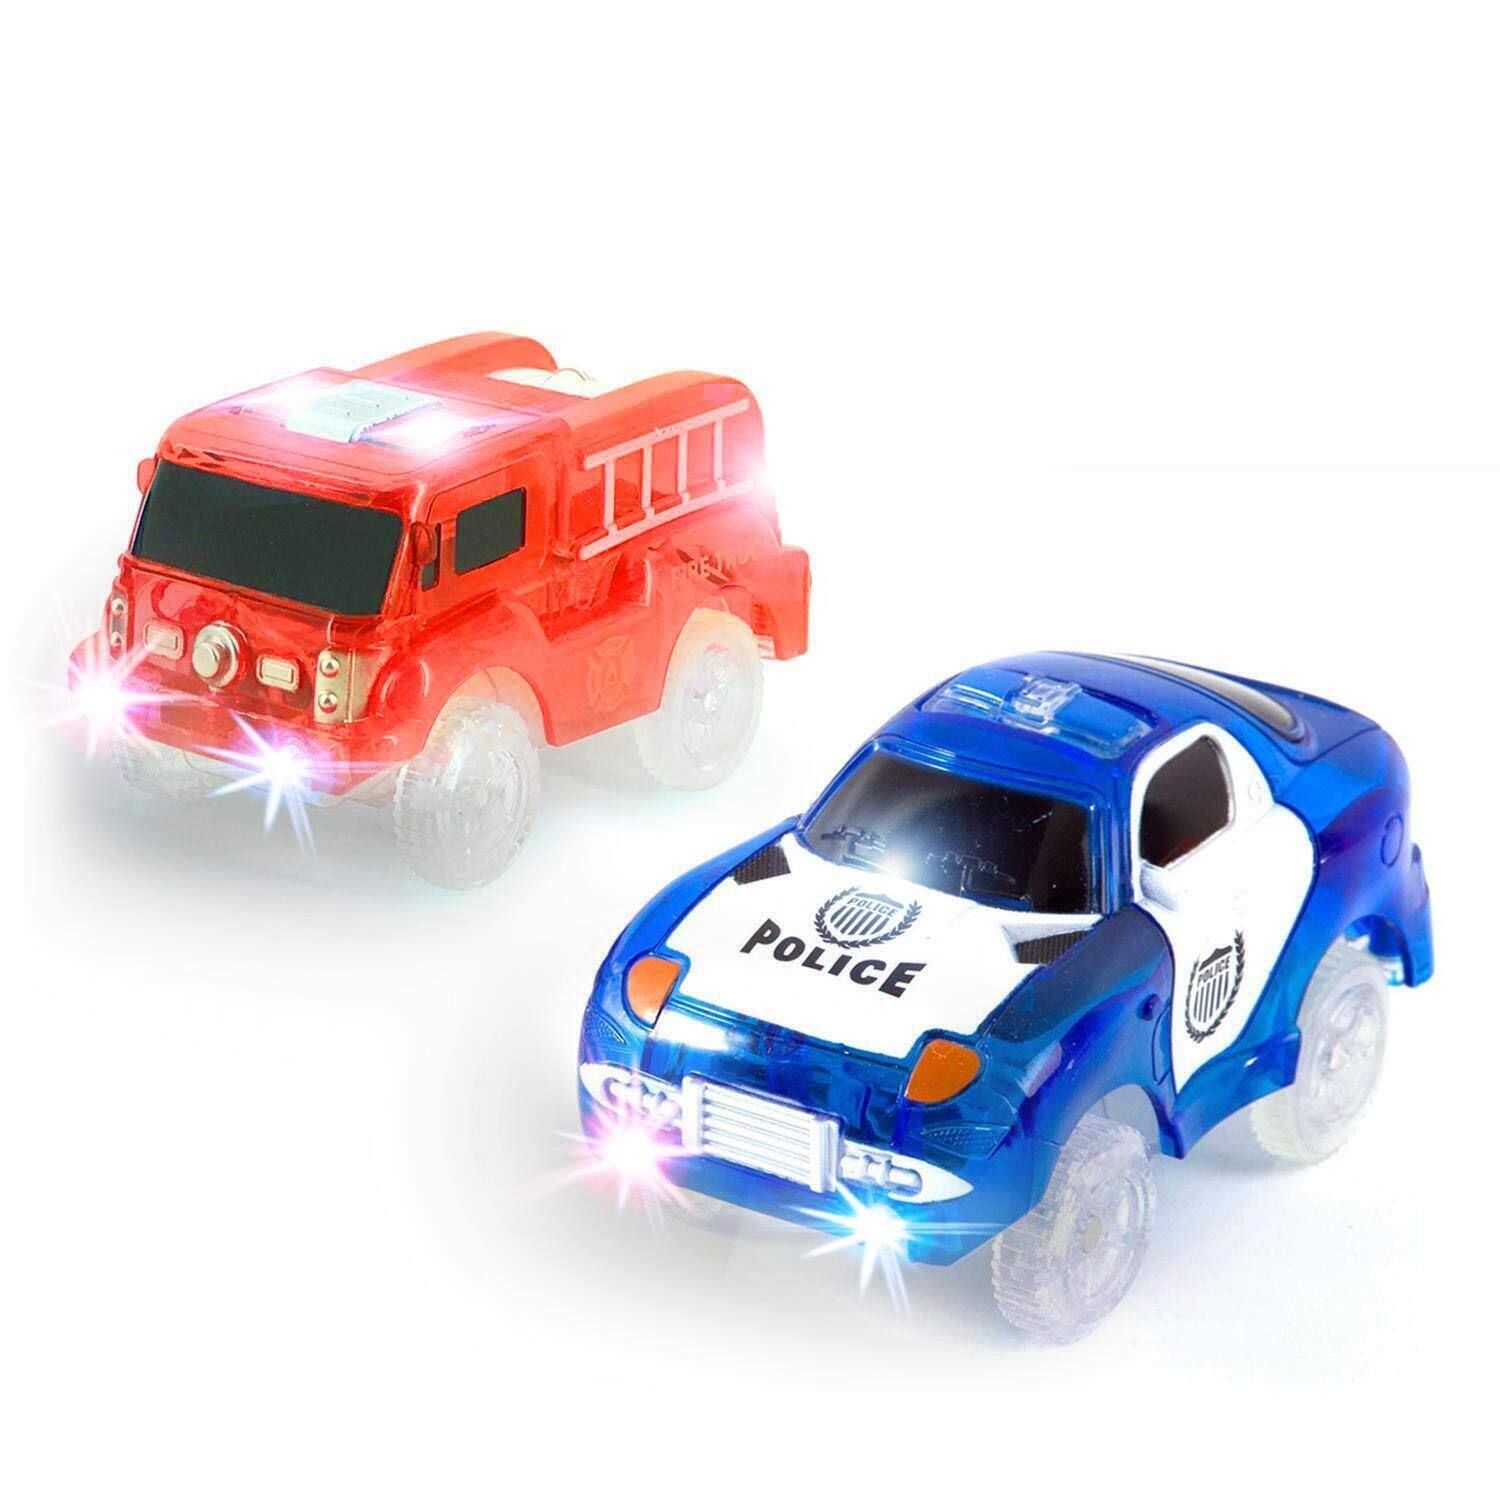 TSLIKANDO 3Pack Glow Tracks Cars Glow in the Dark Light Up Track Replacement Car Compatible with Most Racing Tracks for Boys and Girls